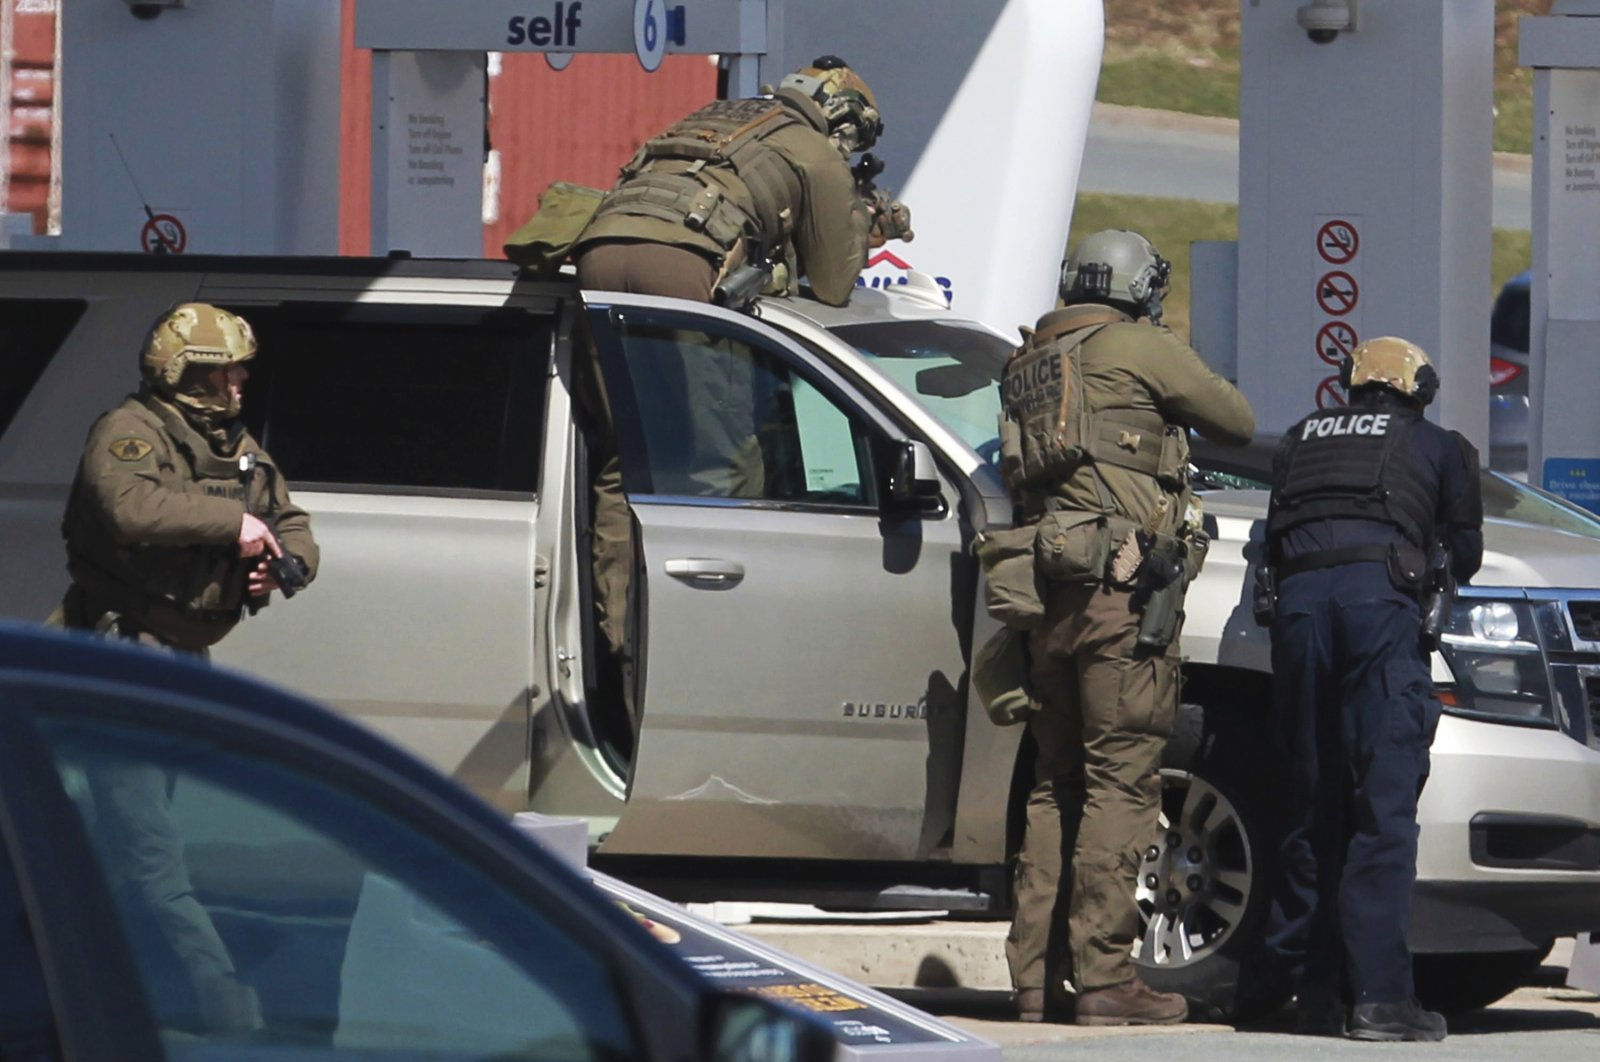 In this April 19, 2020, file photo, Royal Canadian Mounted Police officers surround a suspect at a gas station in Enfield, Nova Scotia. Canadian police say multiple people are dead plus the suspect after a shooting rampage across the province of Nova Scotia. (Tim Krochak/The Canadian Press via AP)